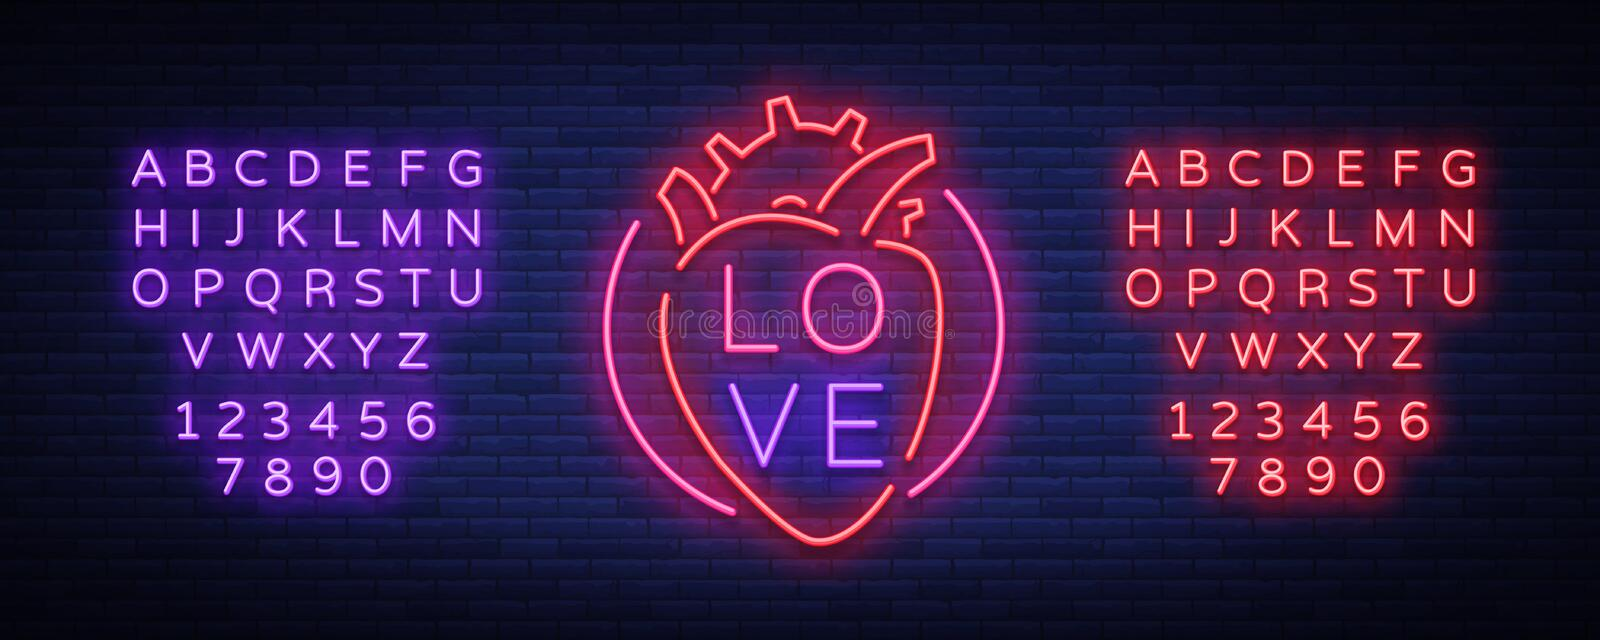 Love symbol vector. Neon sign on the theme of Valentine s Day. Flaming banner for greetings, leaflet, flyer. Bright stock illustration